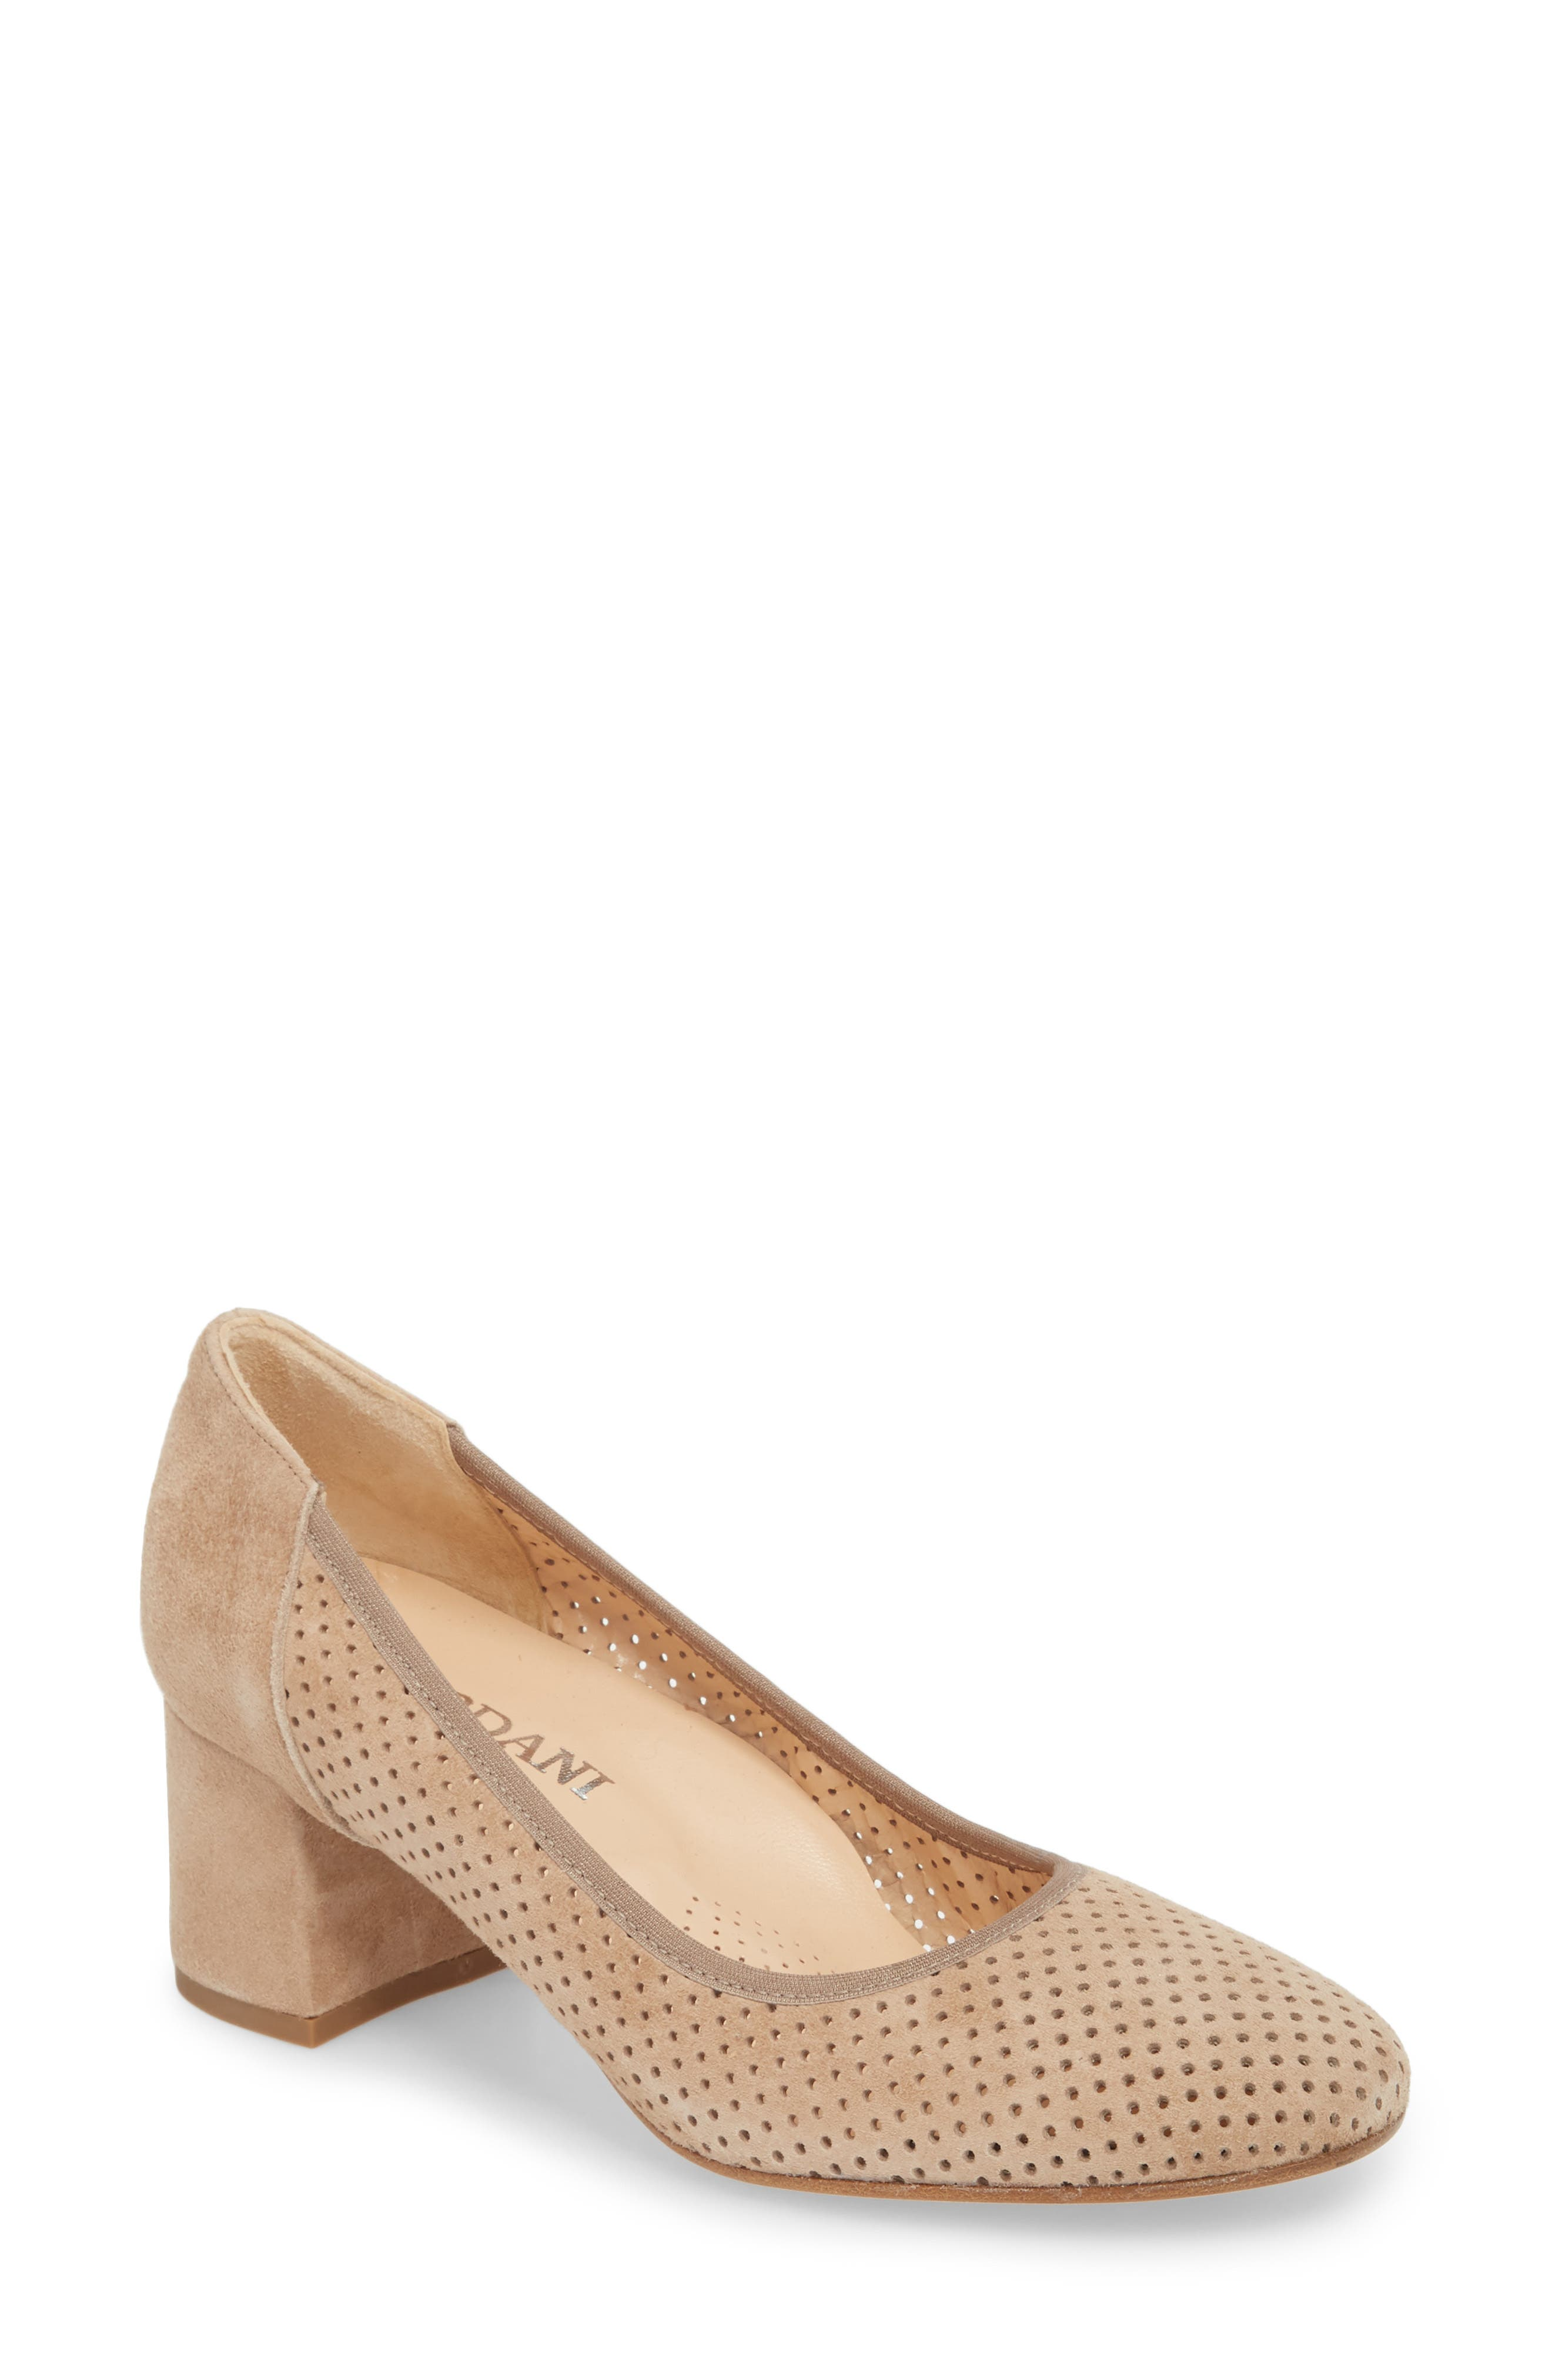 Nevins Pump,                         Main,                         color, TAUPE SUEDE